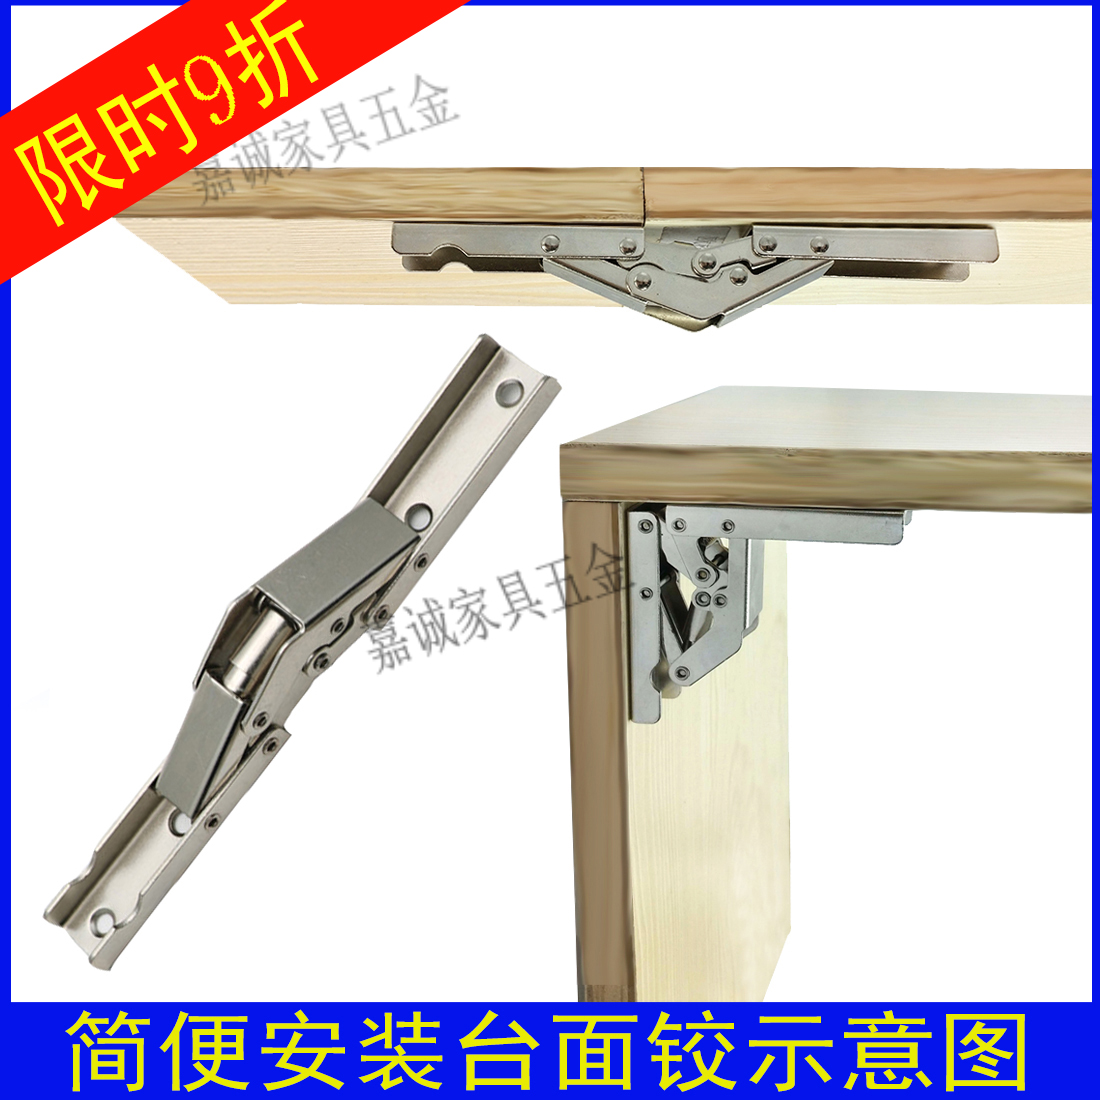 The Hinge 90 Degrees To Fold Easy Install Conversion 180 Degree Countertop Support Plate Concealed Flap